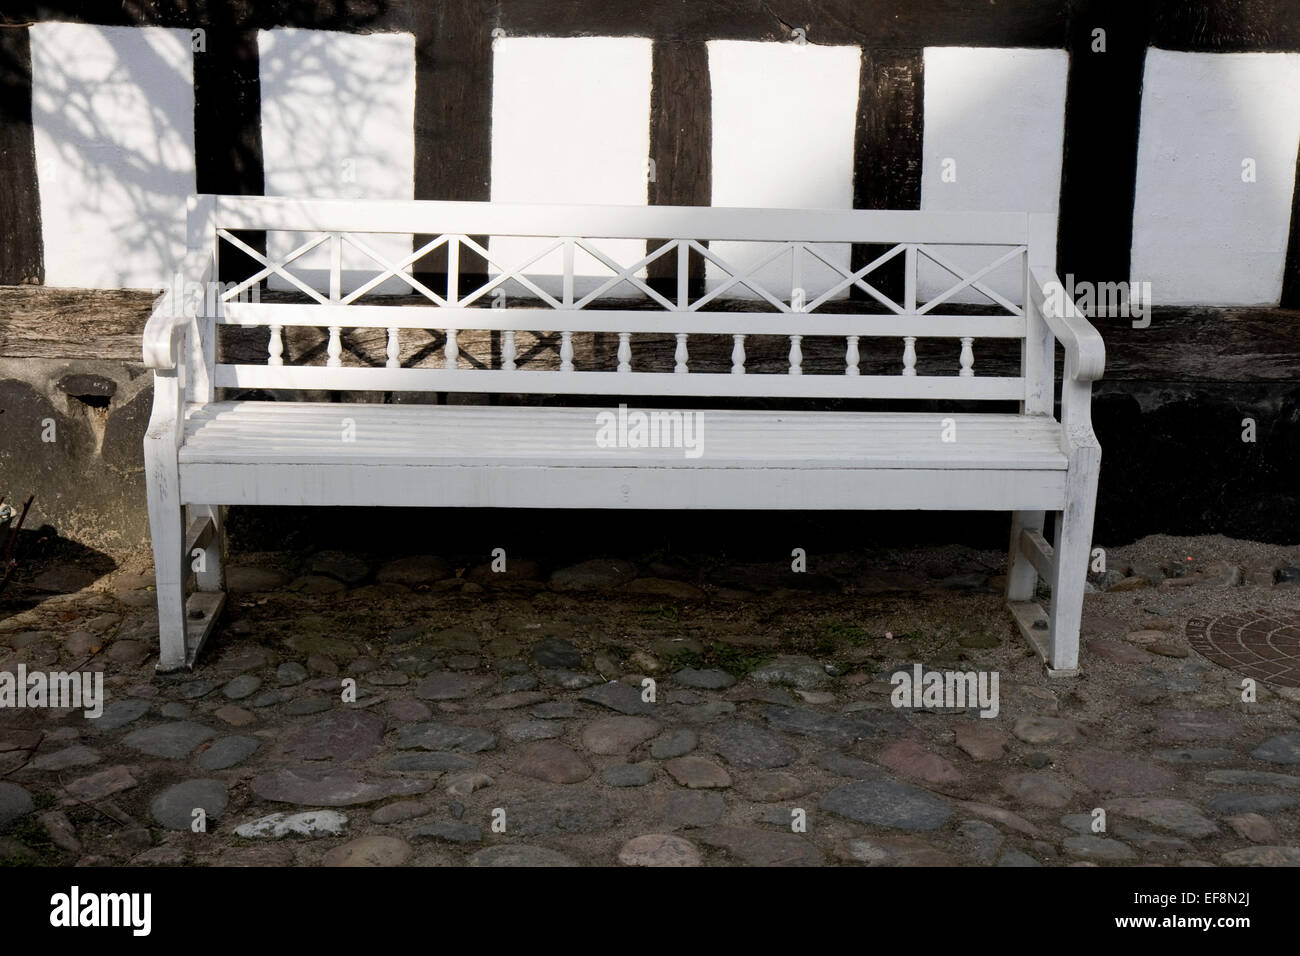 White bench in the shadow of a Half-timbered house - Stock Image